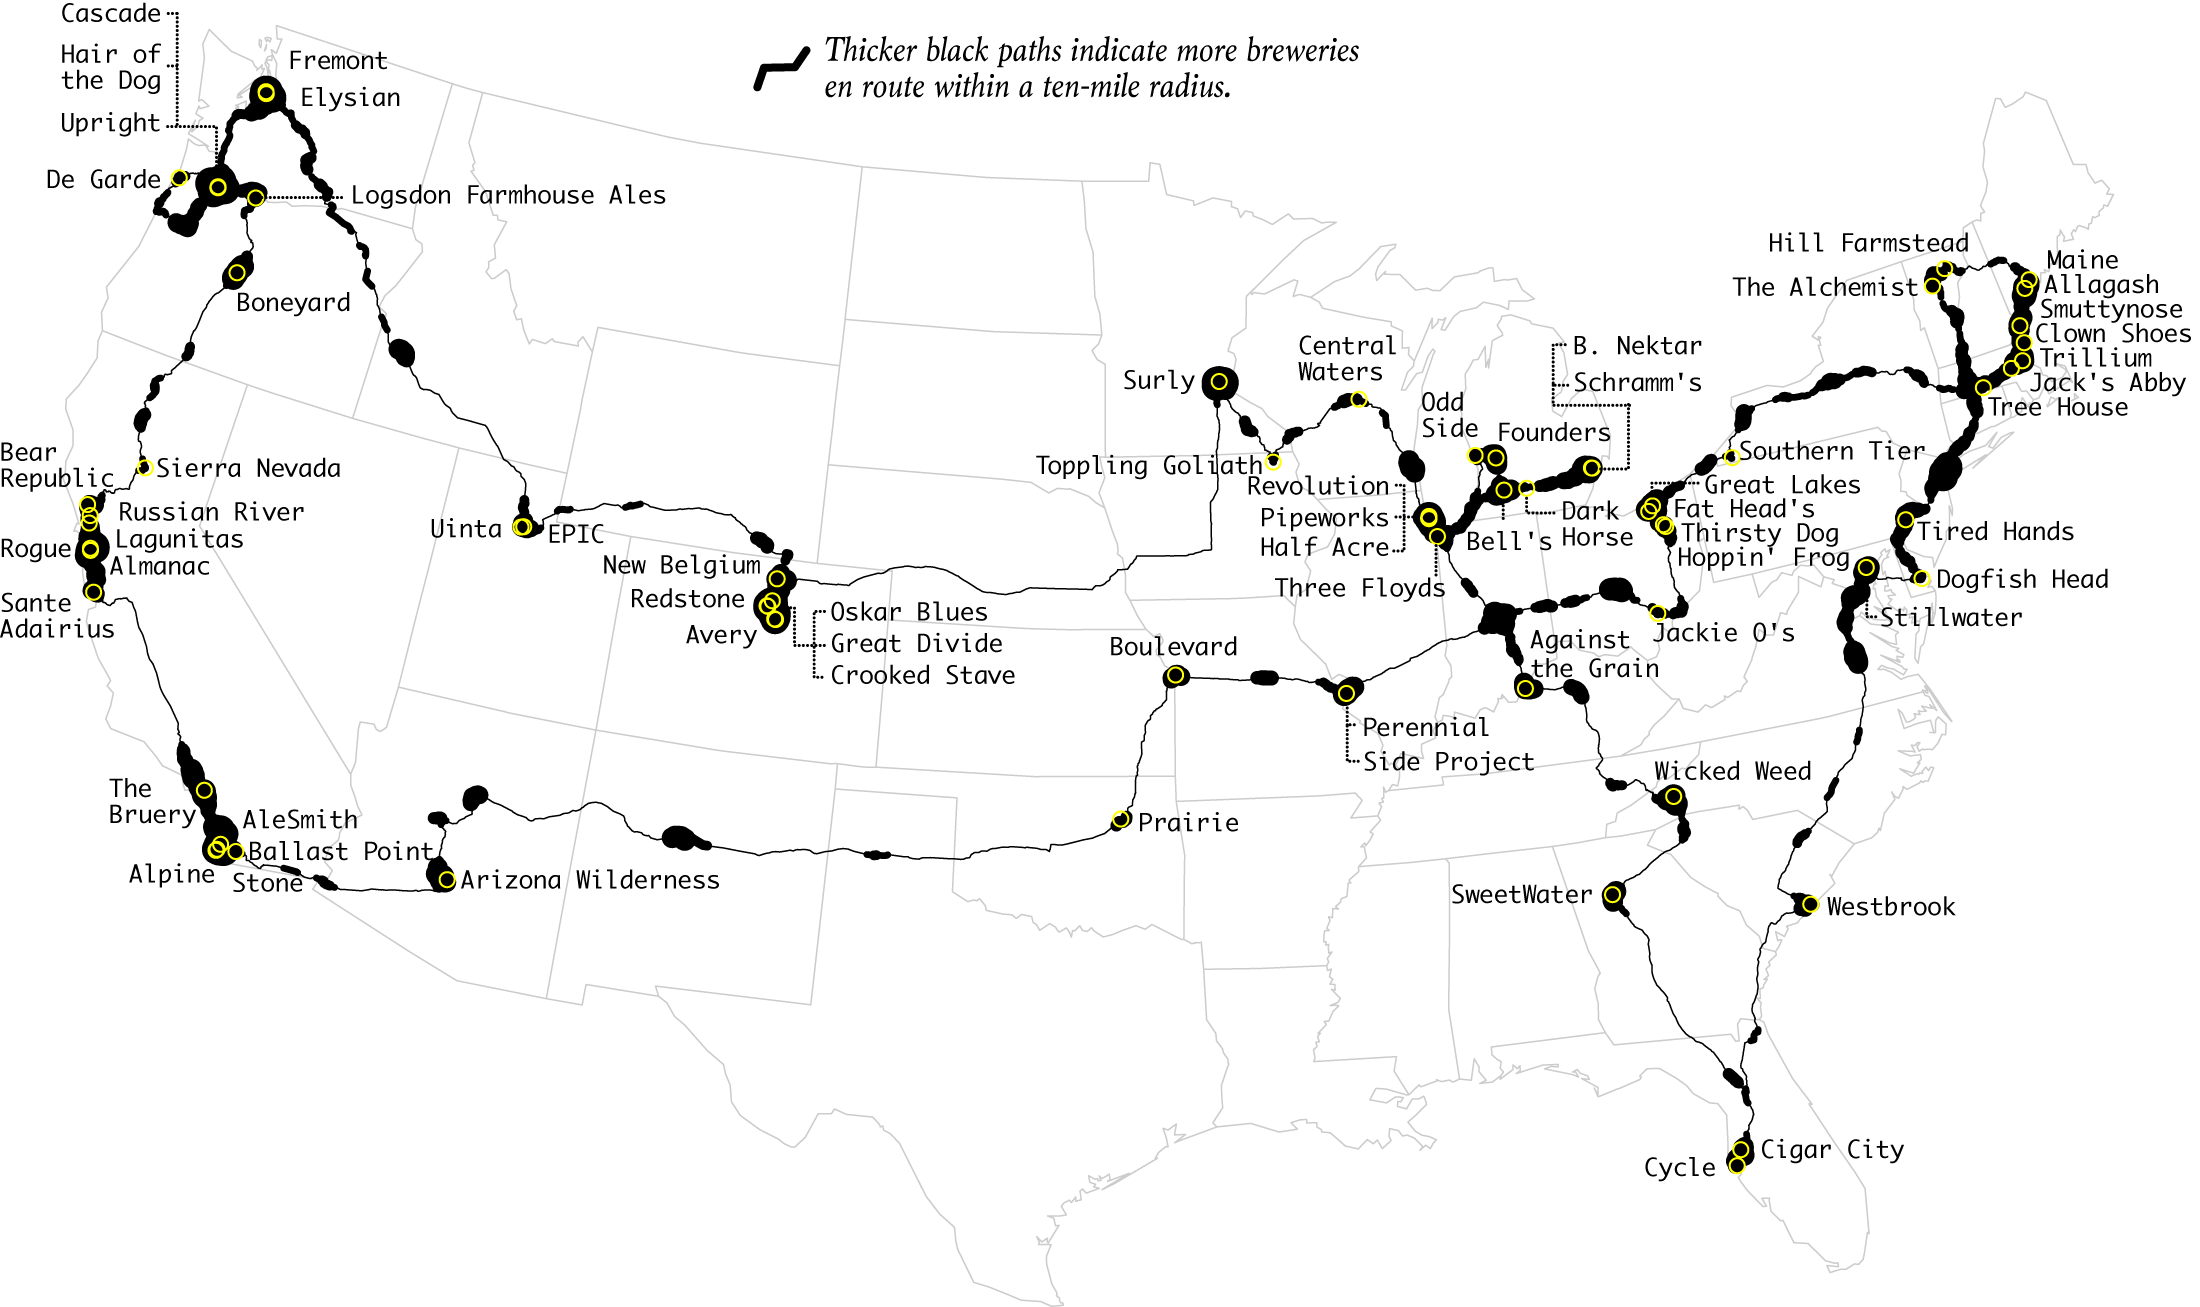 Top Brewery Road Trip, Routed Algorithmically | FlowingData